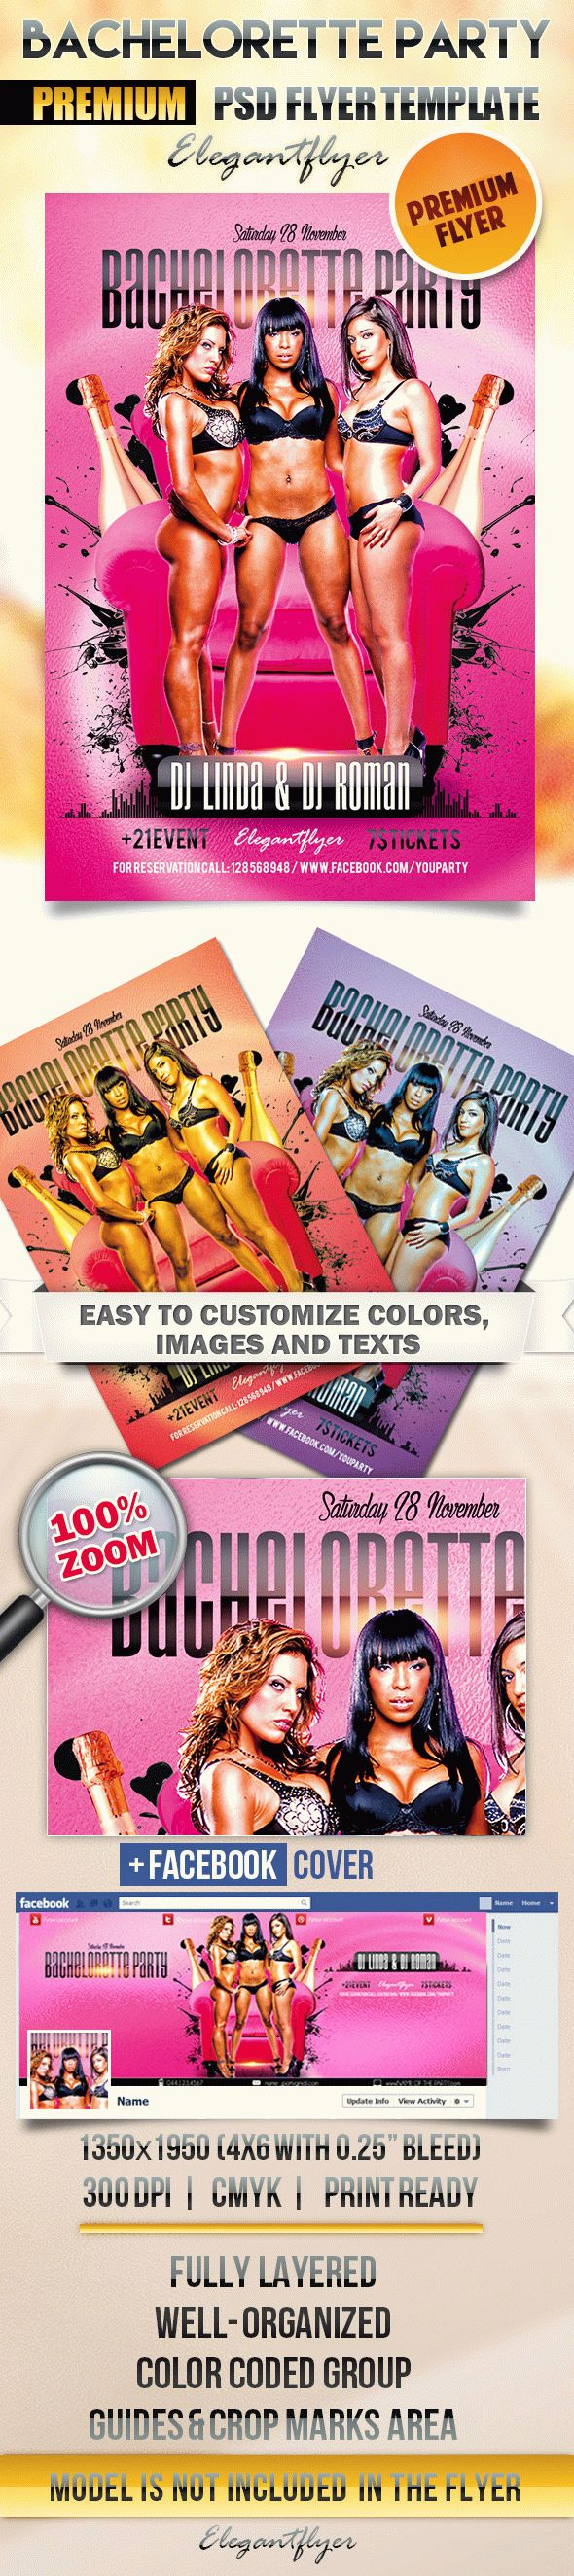 Bachelorette party – Flyer PSD Template